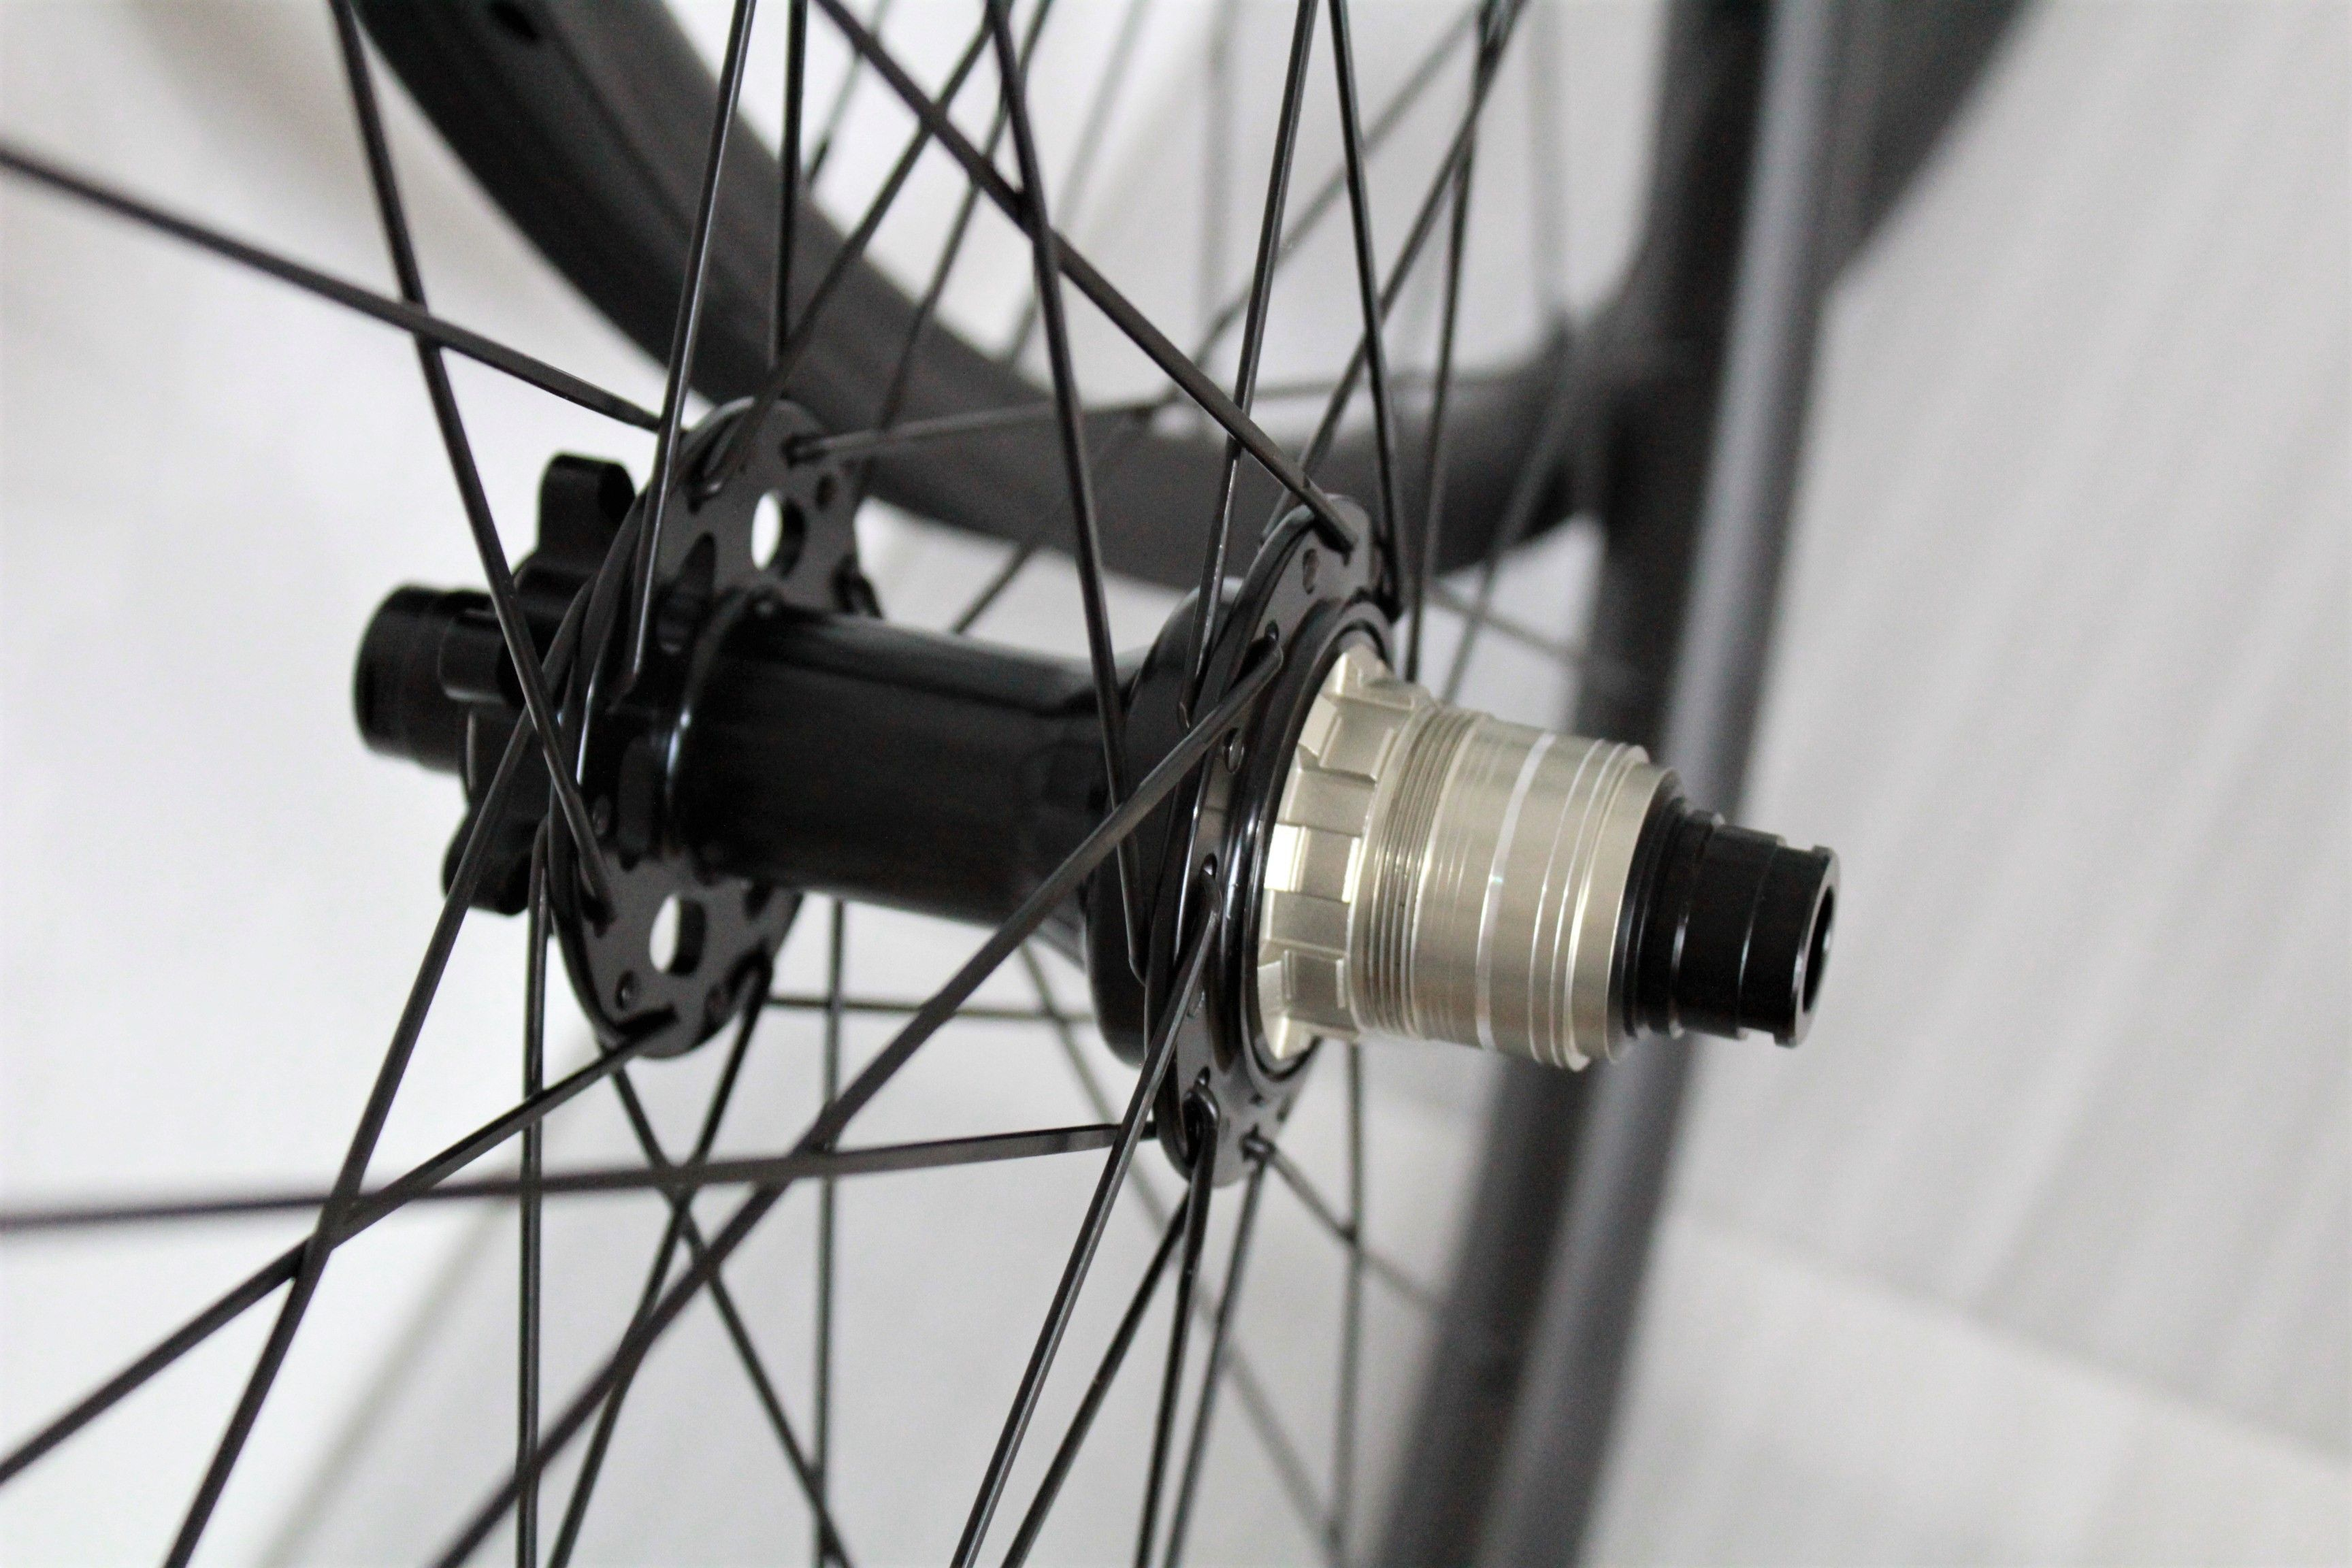 The Sram Xd Driver Allows The Fitment Of A Smaller Higher 10t